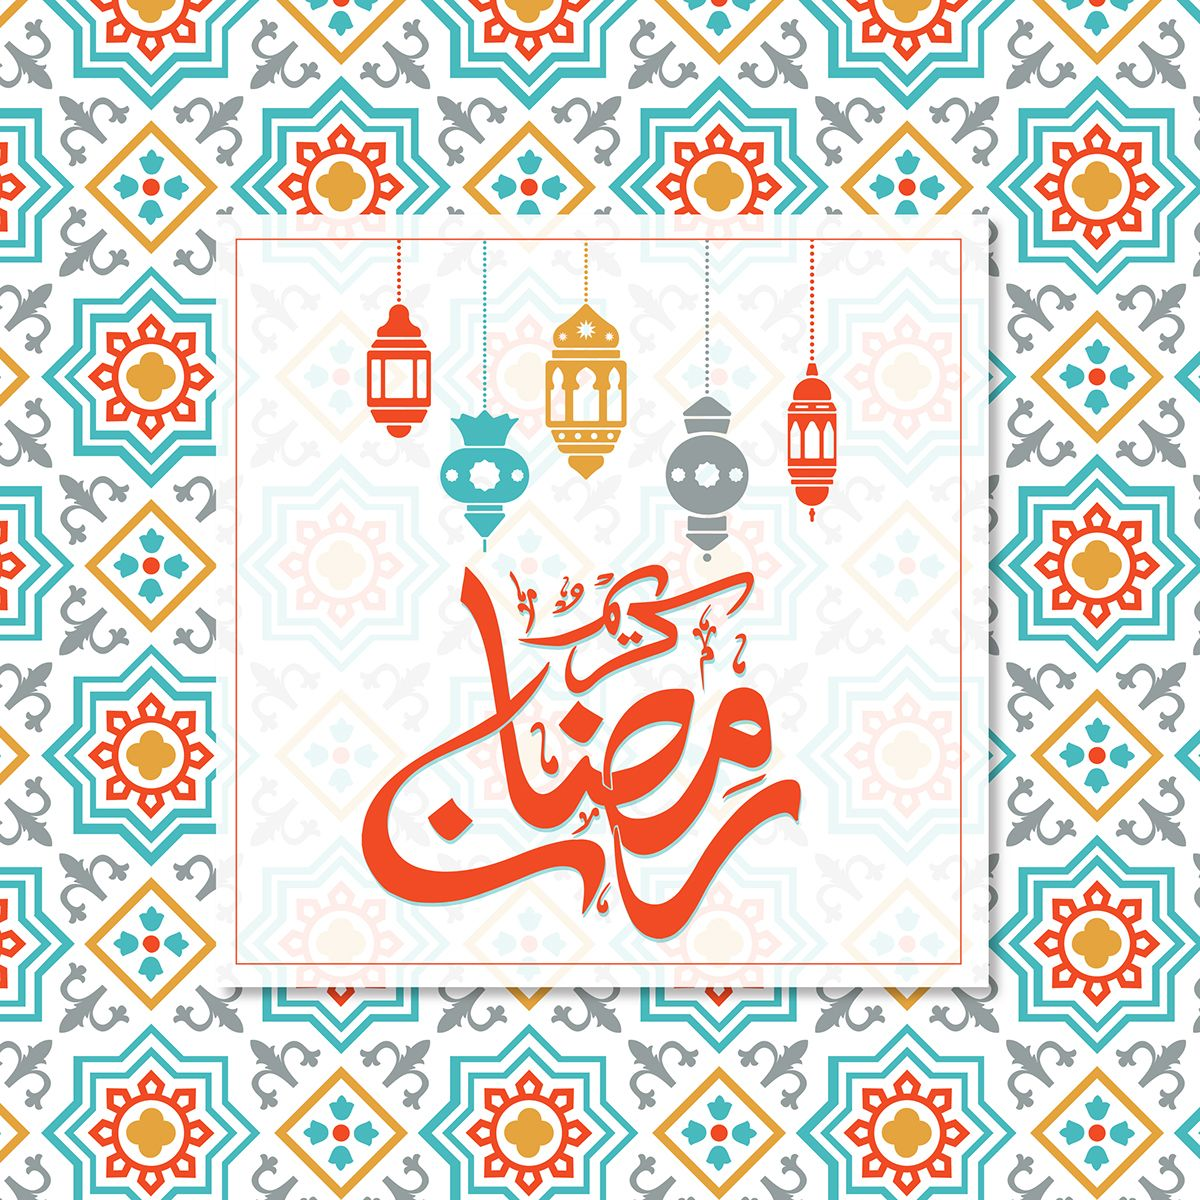 Greeting cards ramadan kareem on behance resources pinterest greeting cards ramadan kareem on behance m4hsunfo